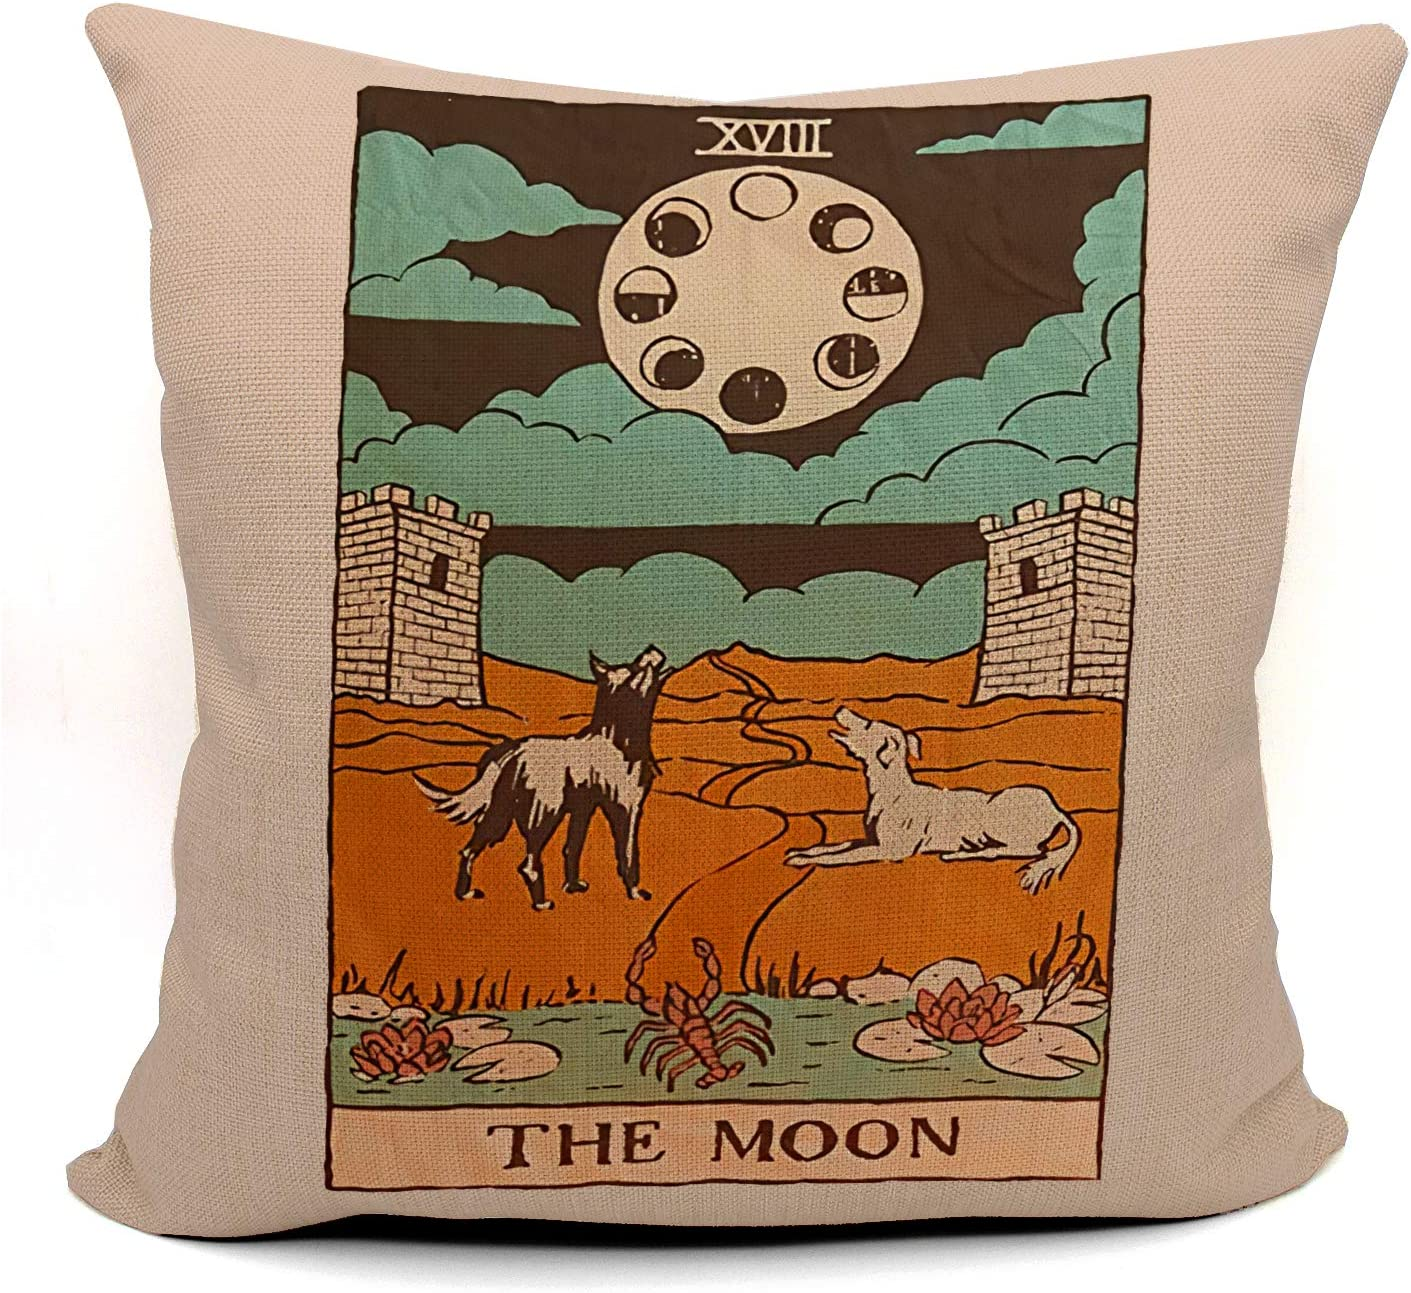 Tarot The Moon Dog Throw Pillow Case, Gift for Daughter, Sister, Mom, Gift for Astrology Lovers, Tarot Lovers,Girl Room Decor, College Dorm Decor, 18 x 18 Inch Linen Cushion Cover for Sofa Couch Bed